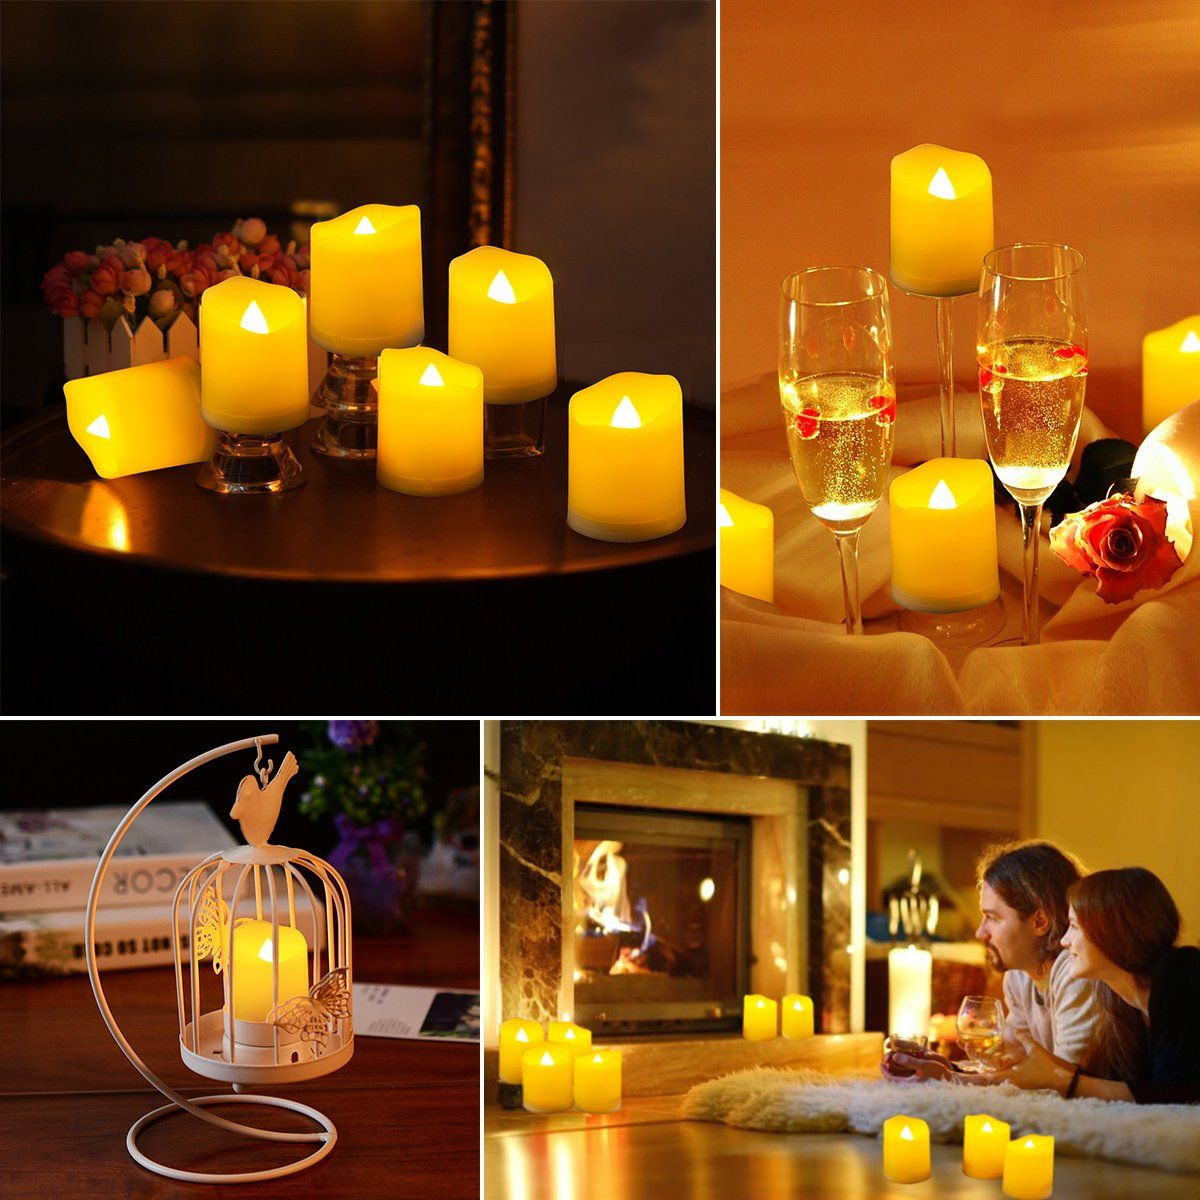 Oria Flameless Candles Led Candle Light Set Battery Operated Tea Lights With Flickering Bulb Gift Idea